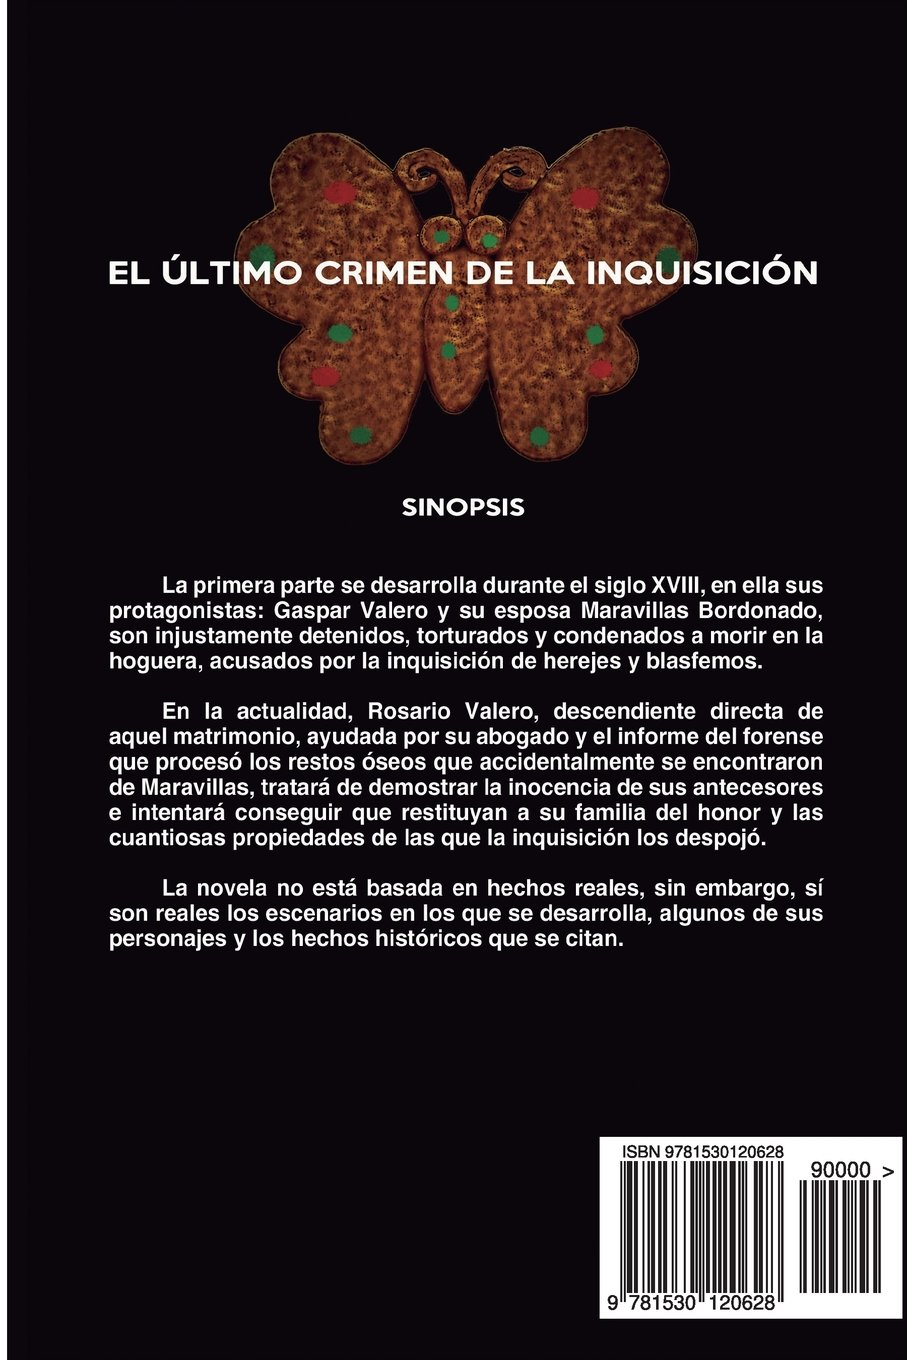 El último crimen de la Inquisición (Spanish Edition): Manuel Sánchez Pérez: 9781530120628: Amazon.com: Books